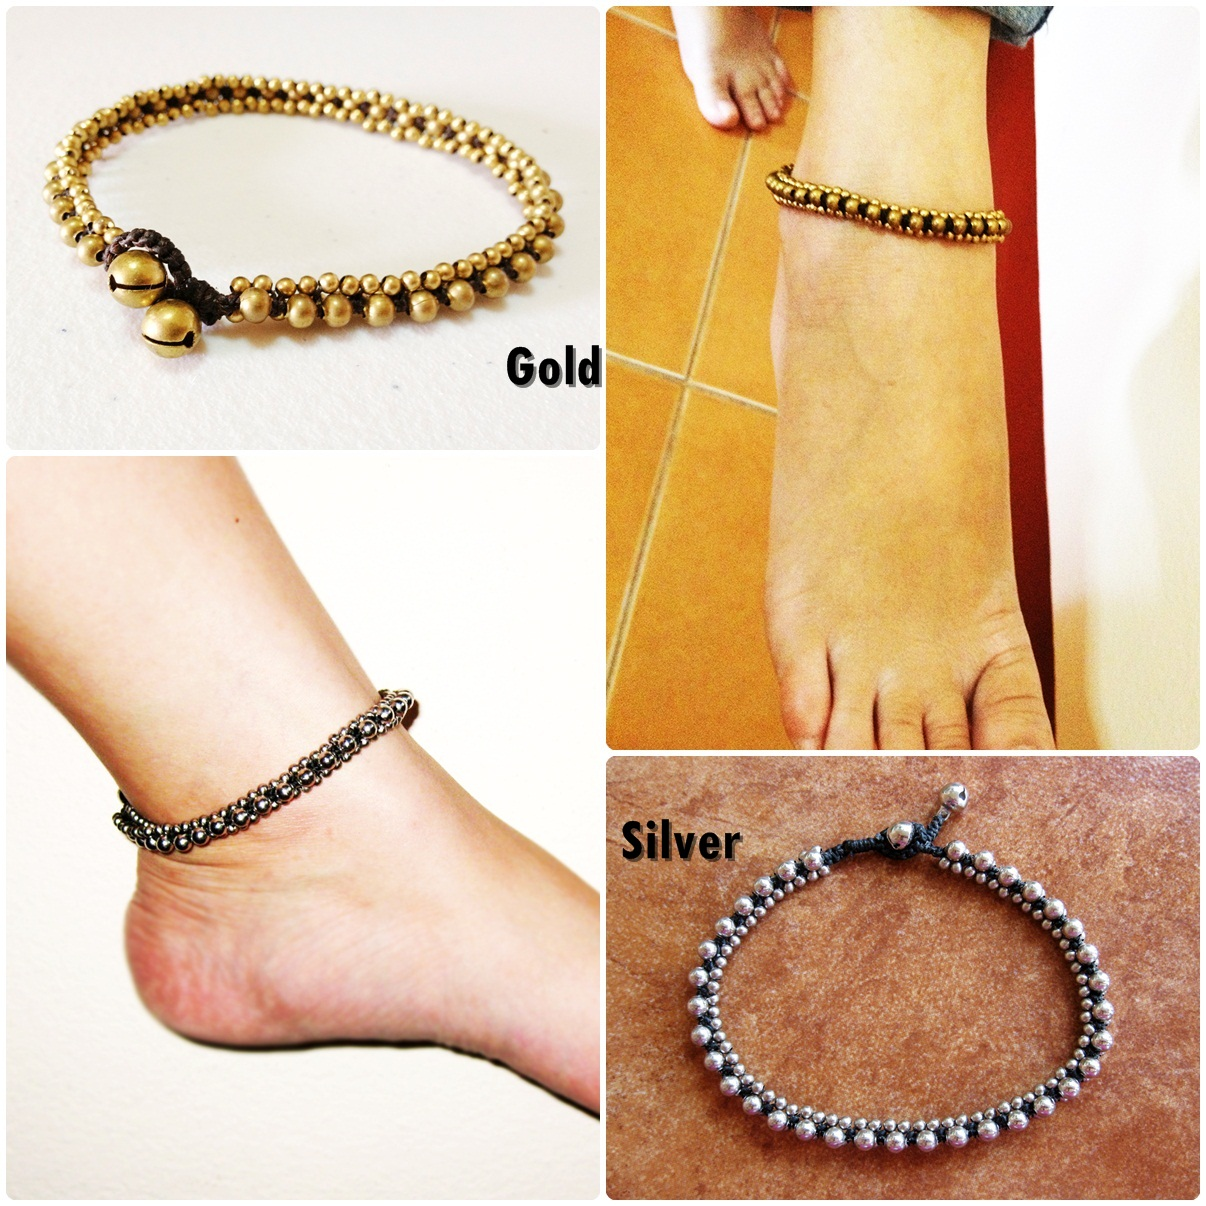 india product bracelet jewelry chain women anklet anklets rhinestone for from store beach ankle elephant sexy foot barefoot online